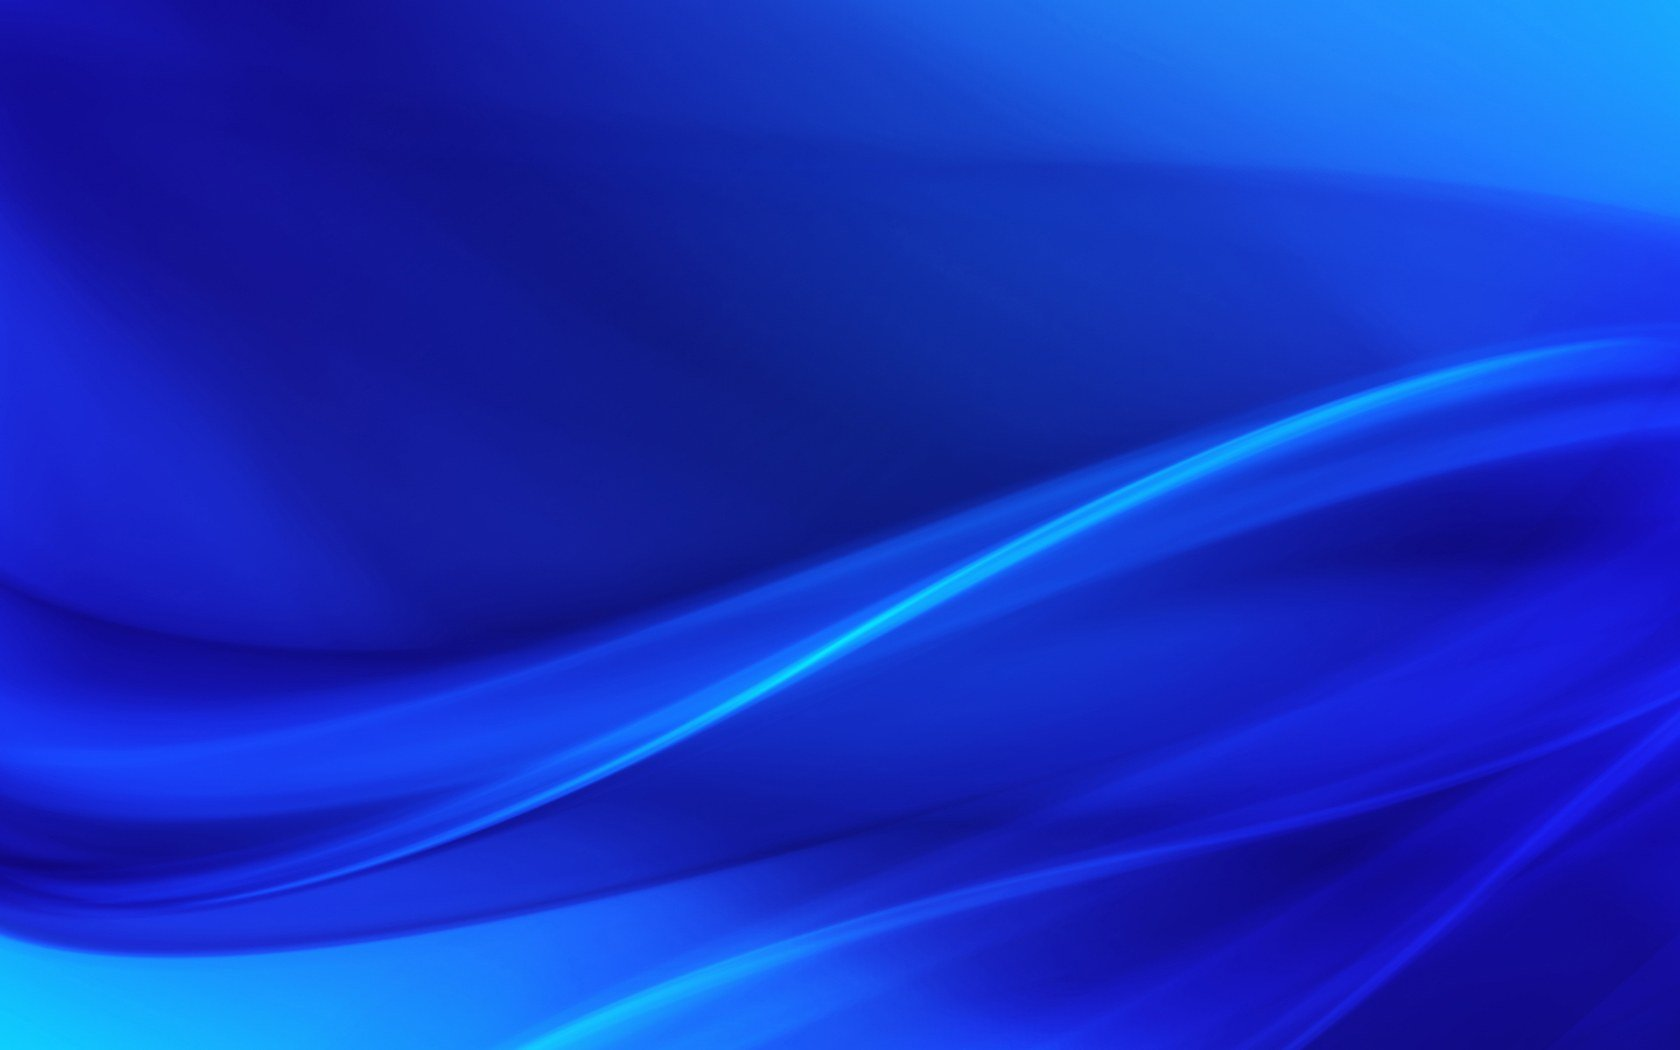 Blue Background   Blue Abstract Light Effect 16801050 NO28 Wallpaper 1680x1050